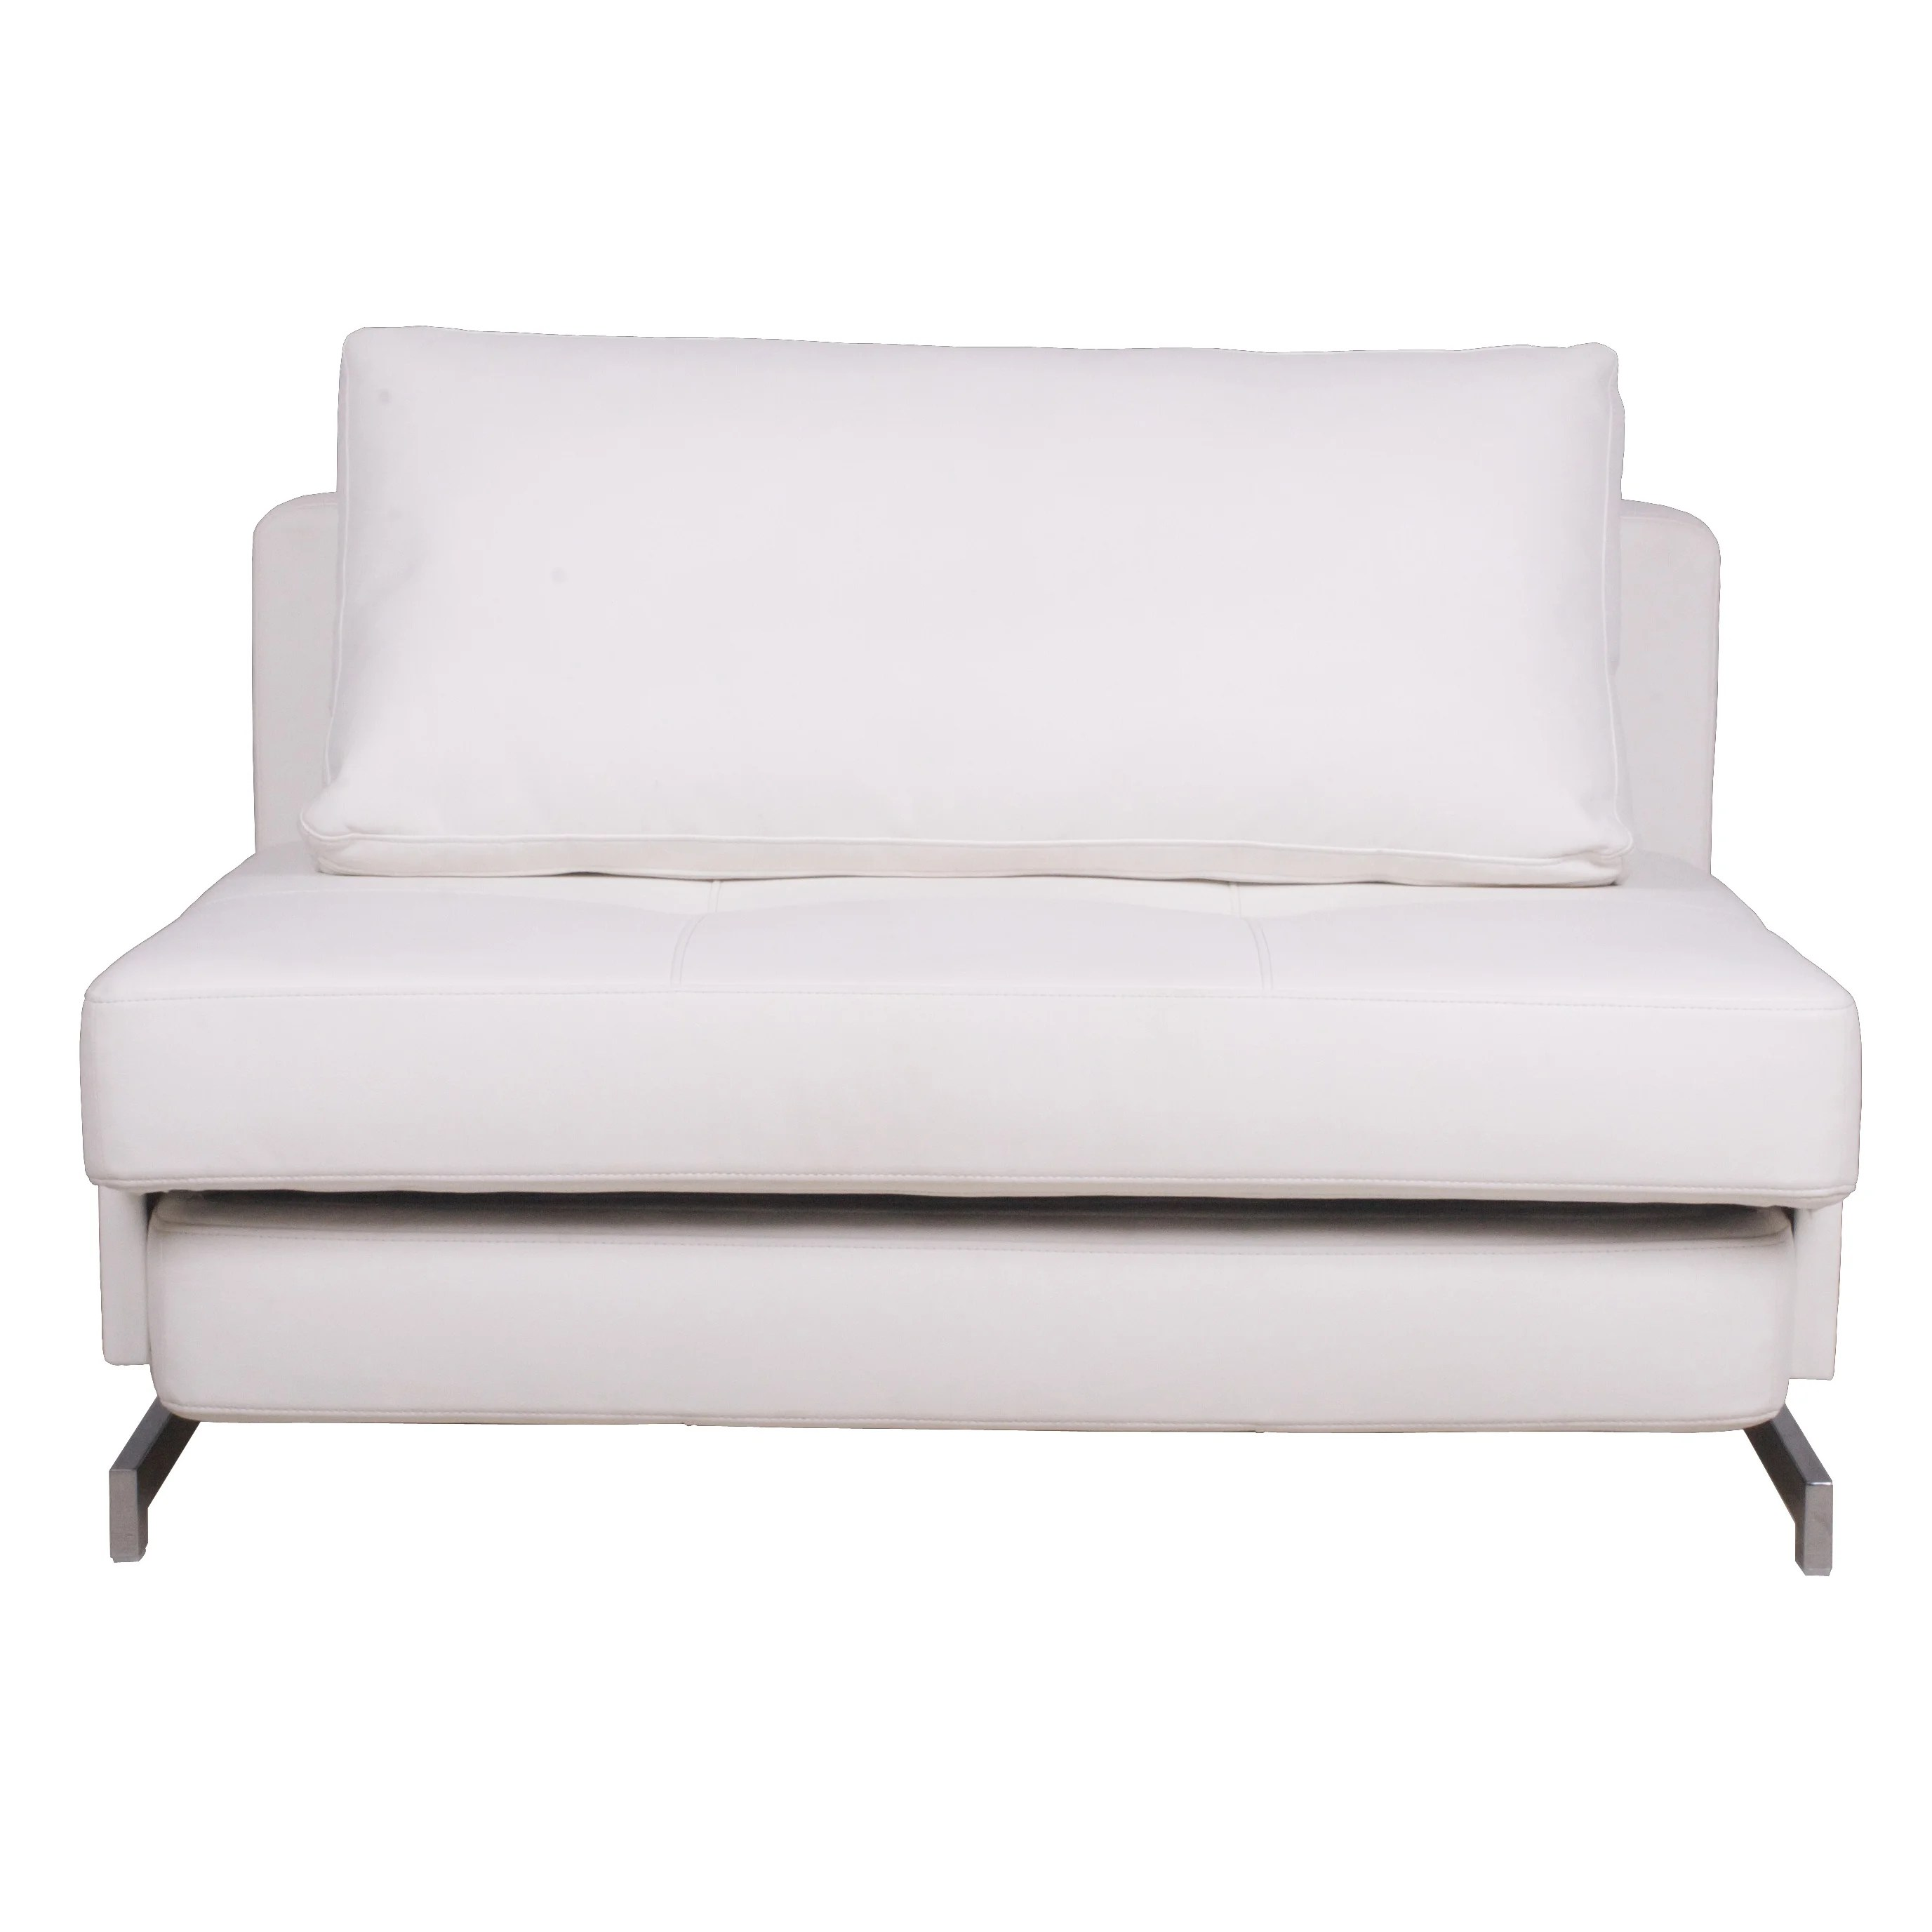 j m paquet sofa cleopatra set in the philippines andm furniture premium sleeper and reviews wayfair